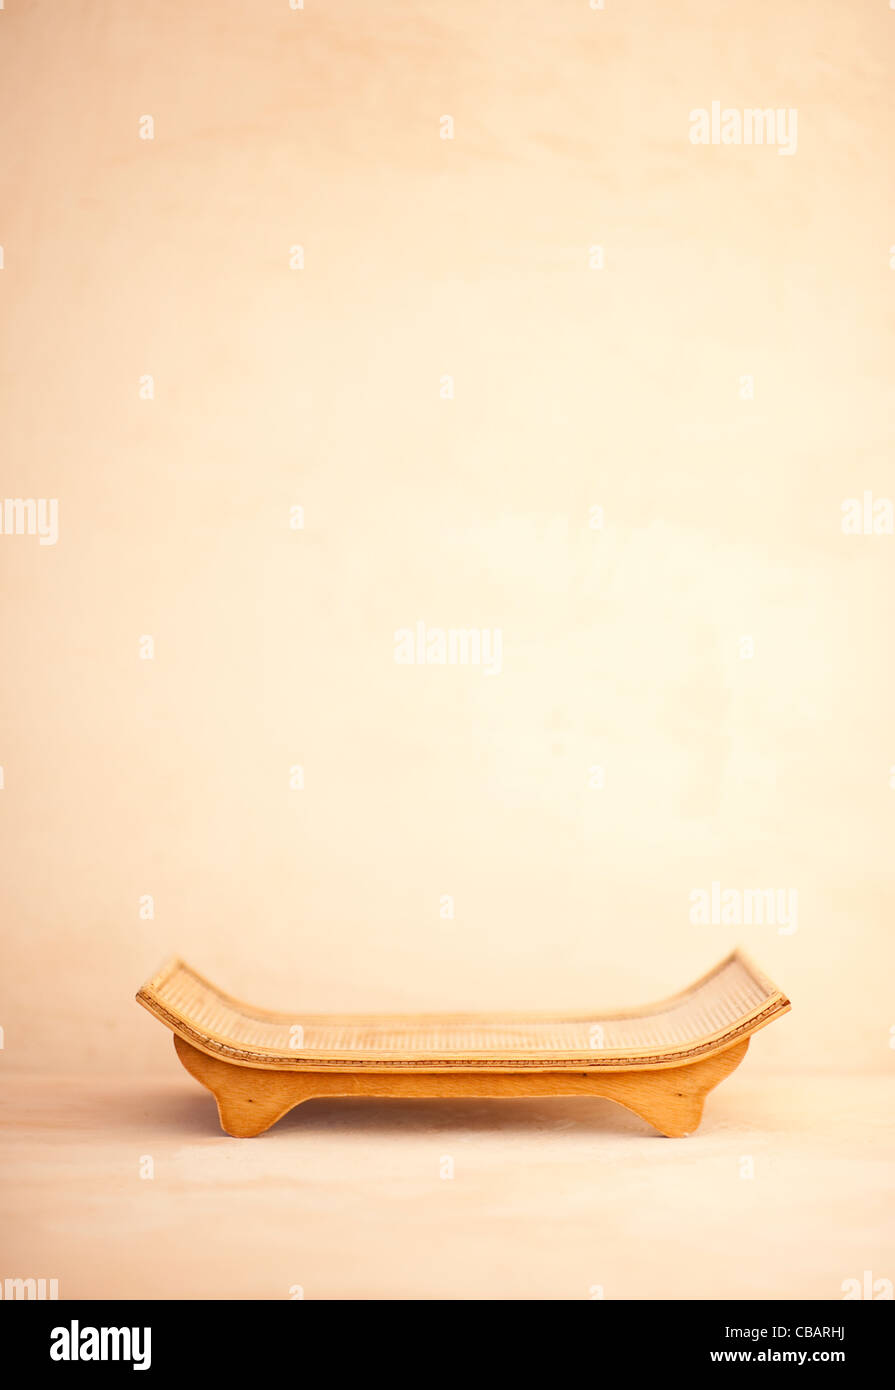 Zen service tray simple still life photograph. Stock Photo